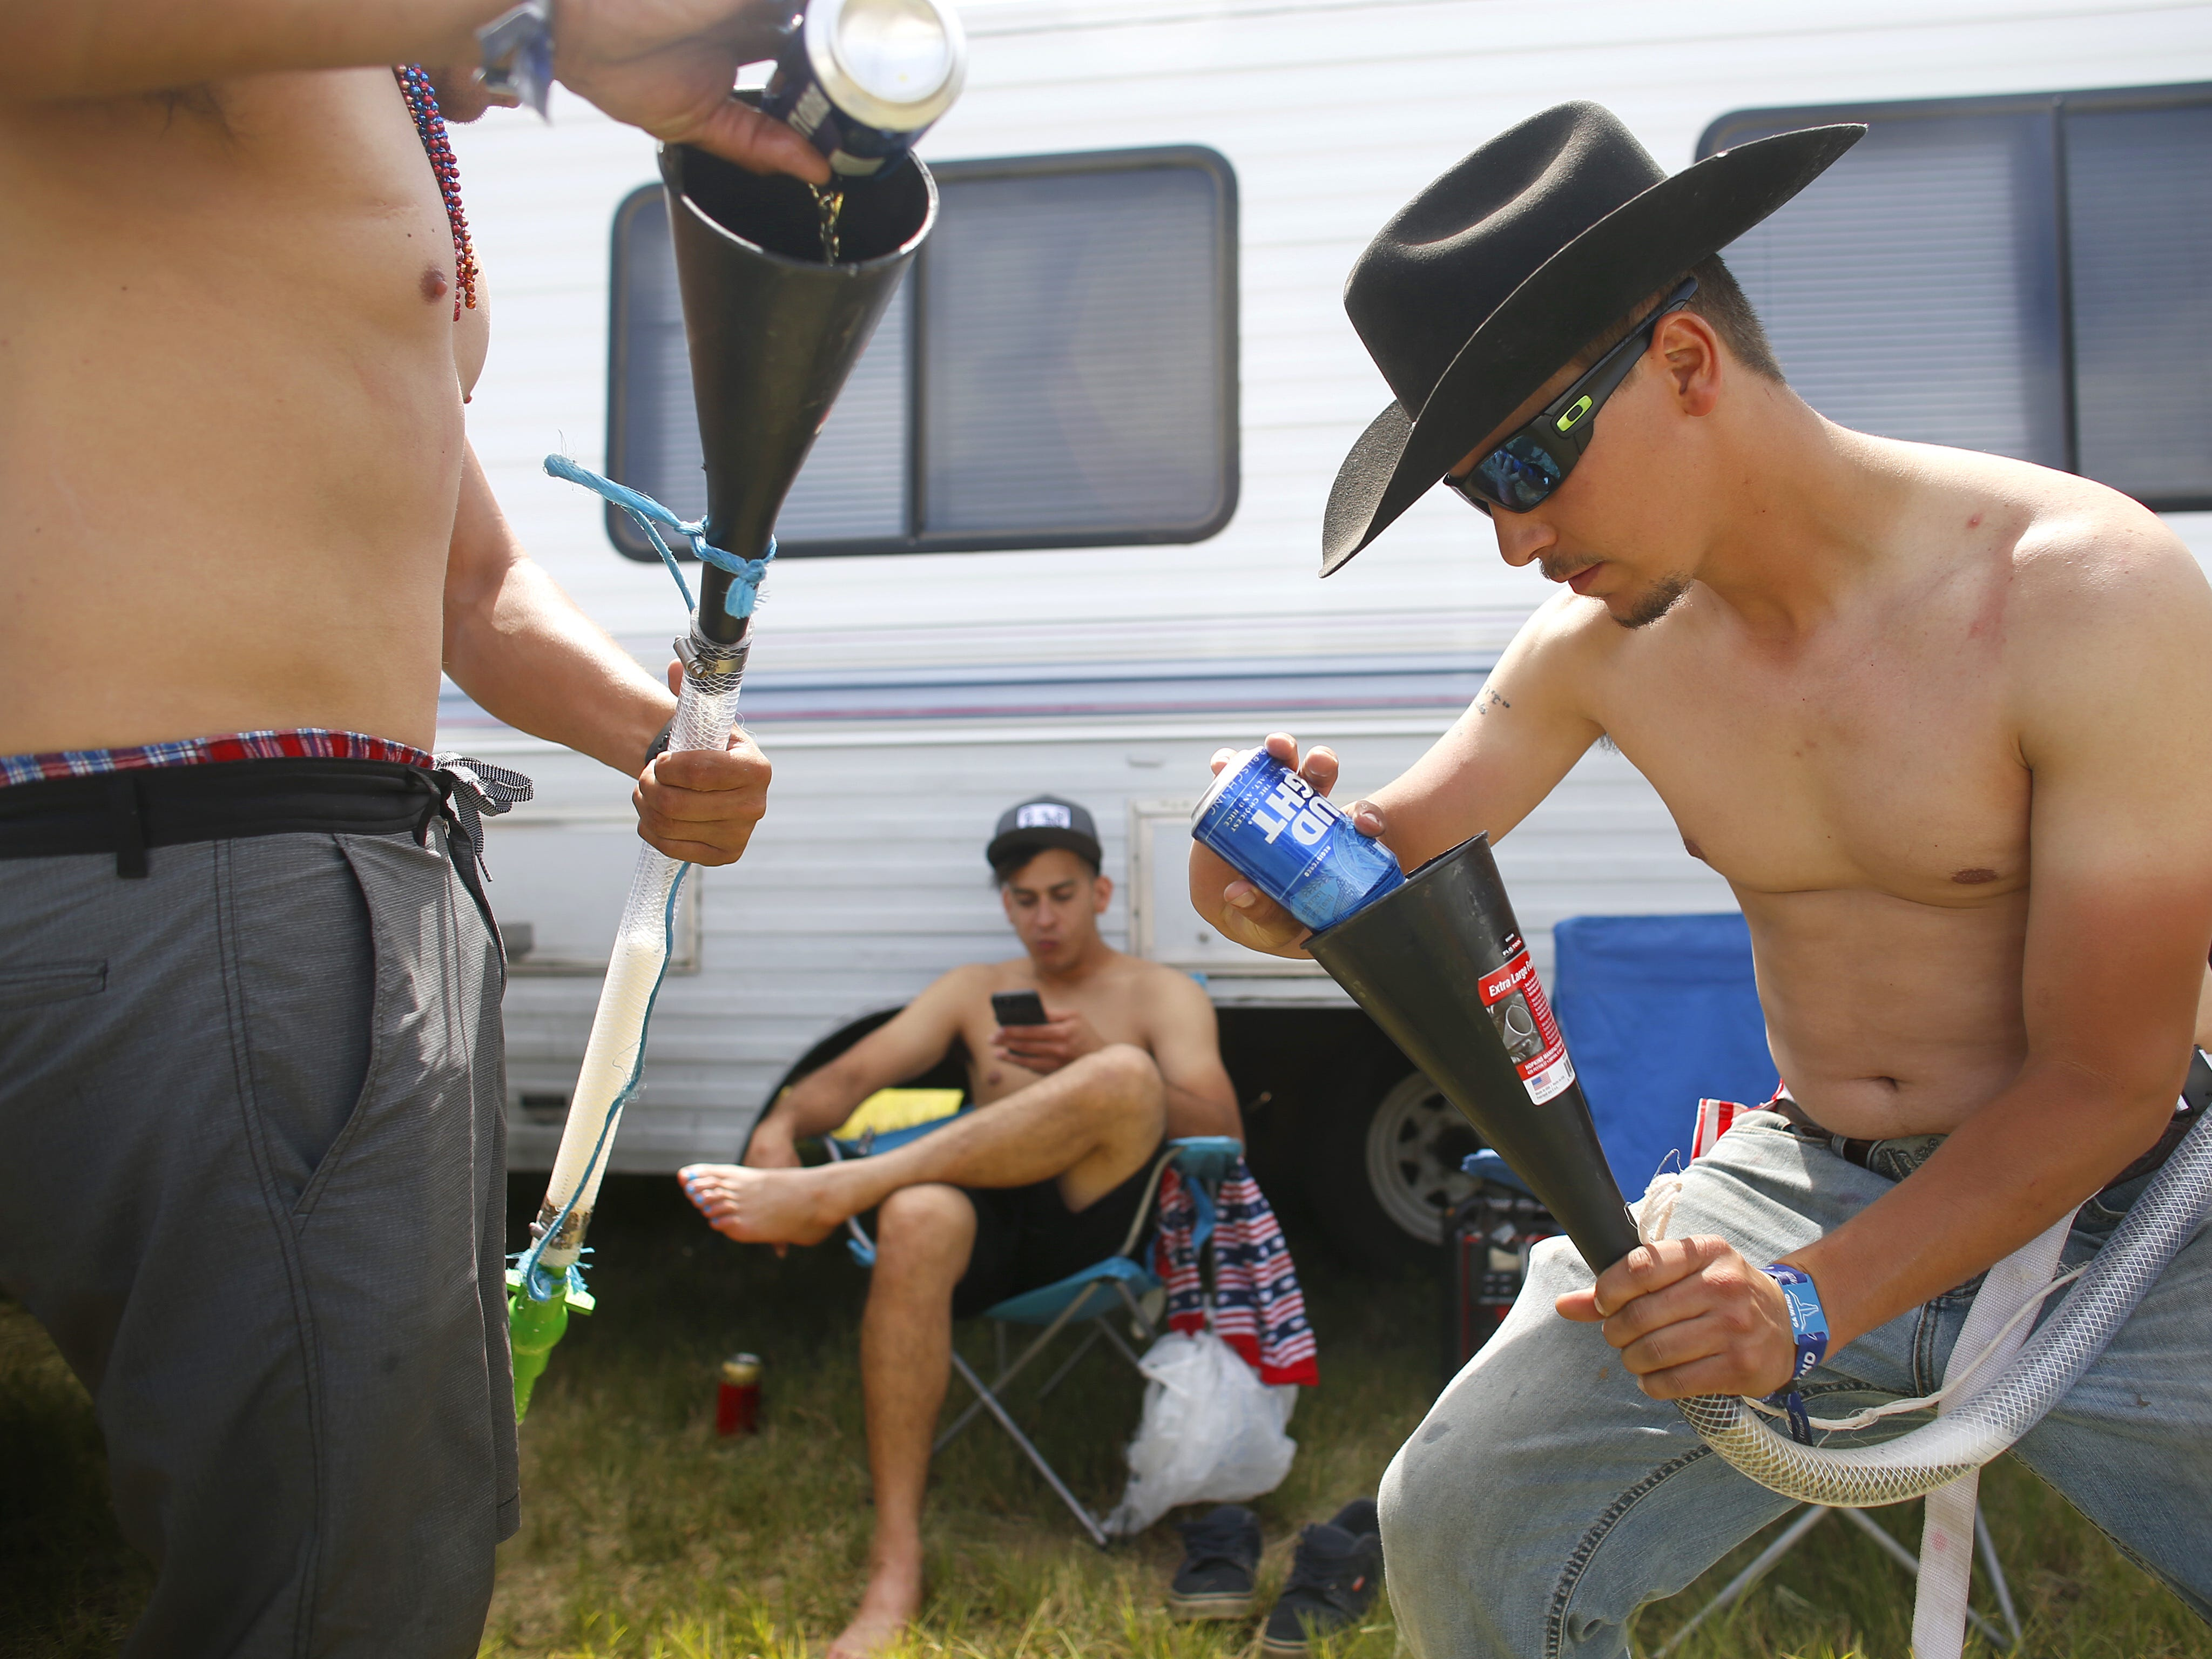 Max Pena (right) and his friend Brian Schurz (left) pour Bud Light into their beer bongs as Kenny Ramos watches during Country Thunder in Florence, Ariz. on Sunday, April 14, 2019.